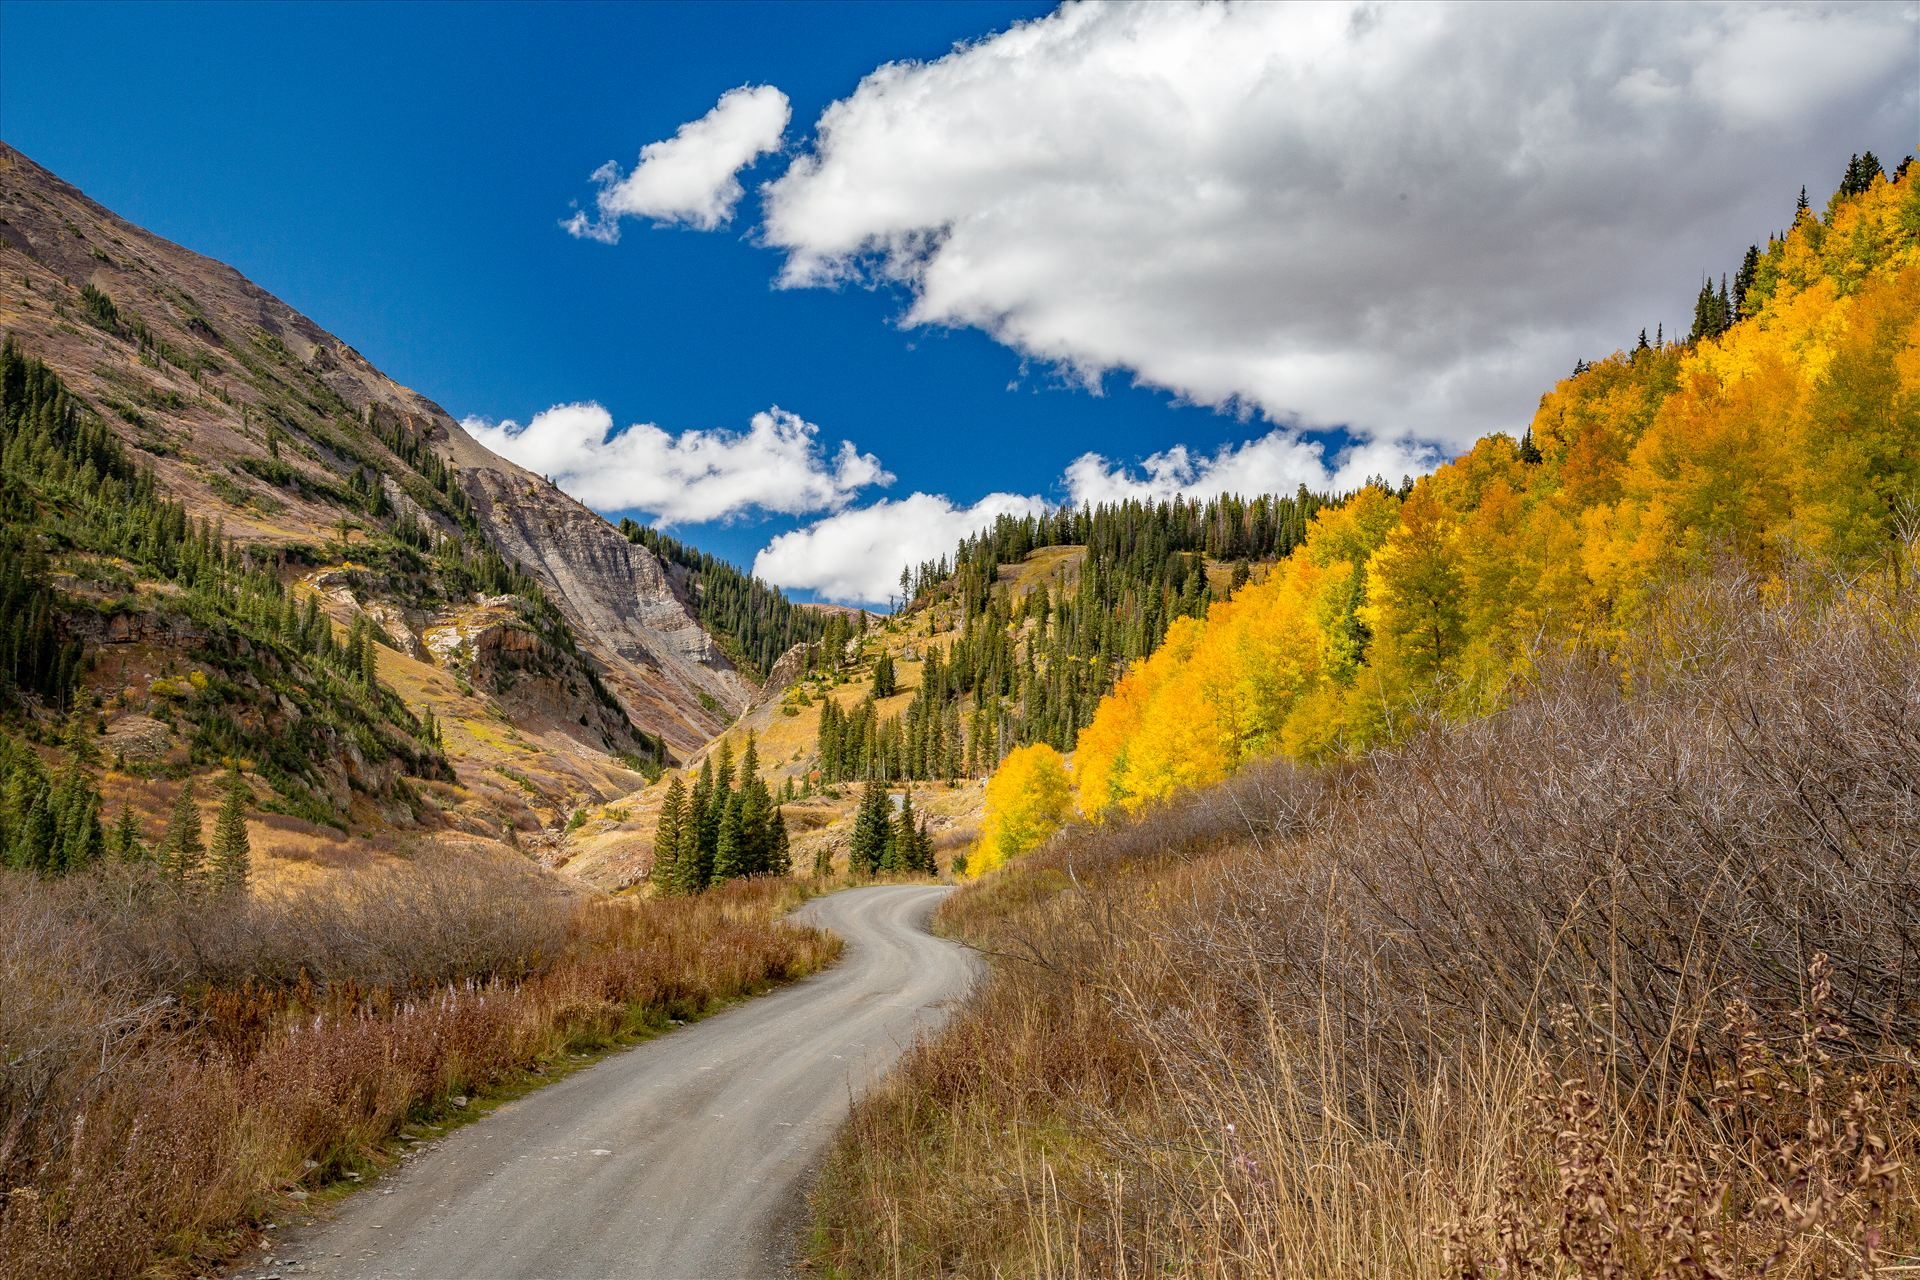 Schofield Pass Fall colors and bluebird skies Just before Emerald Lake on Schofield Pass, near Crested Butte, Colorado. by Scott Smith Photos